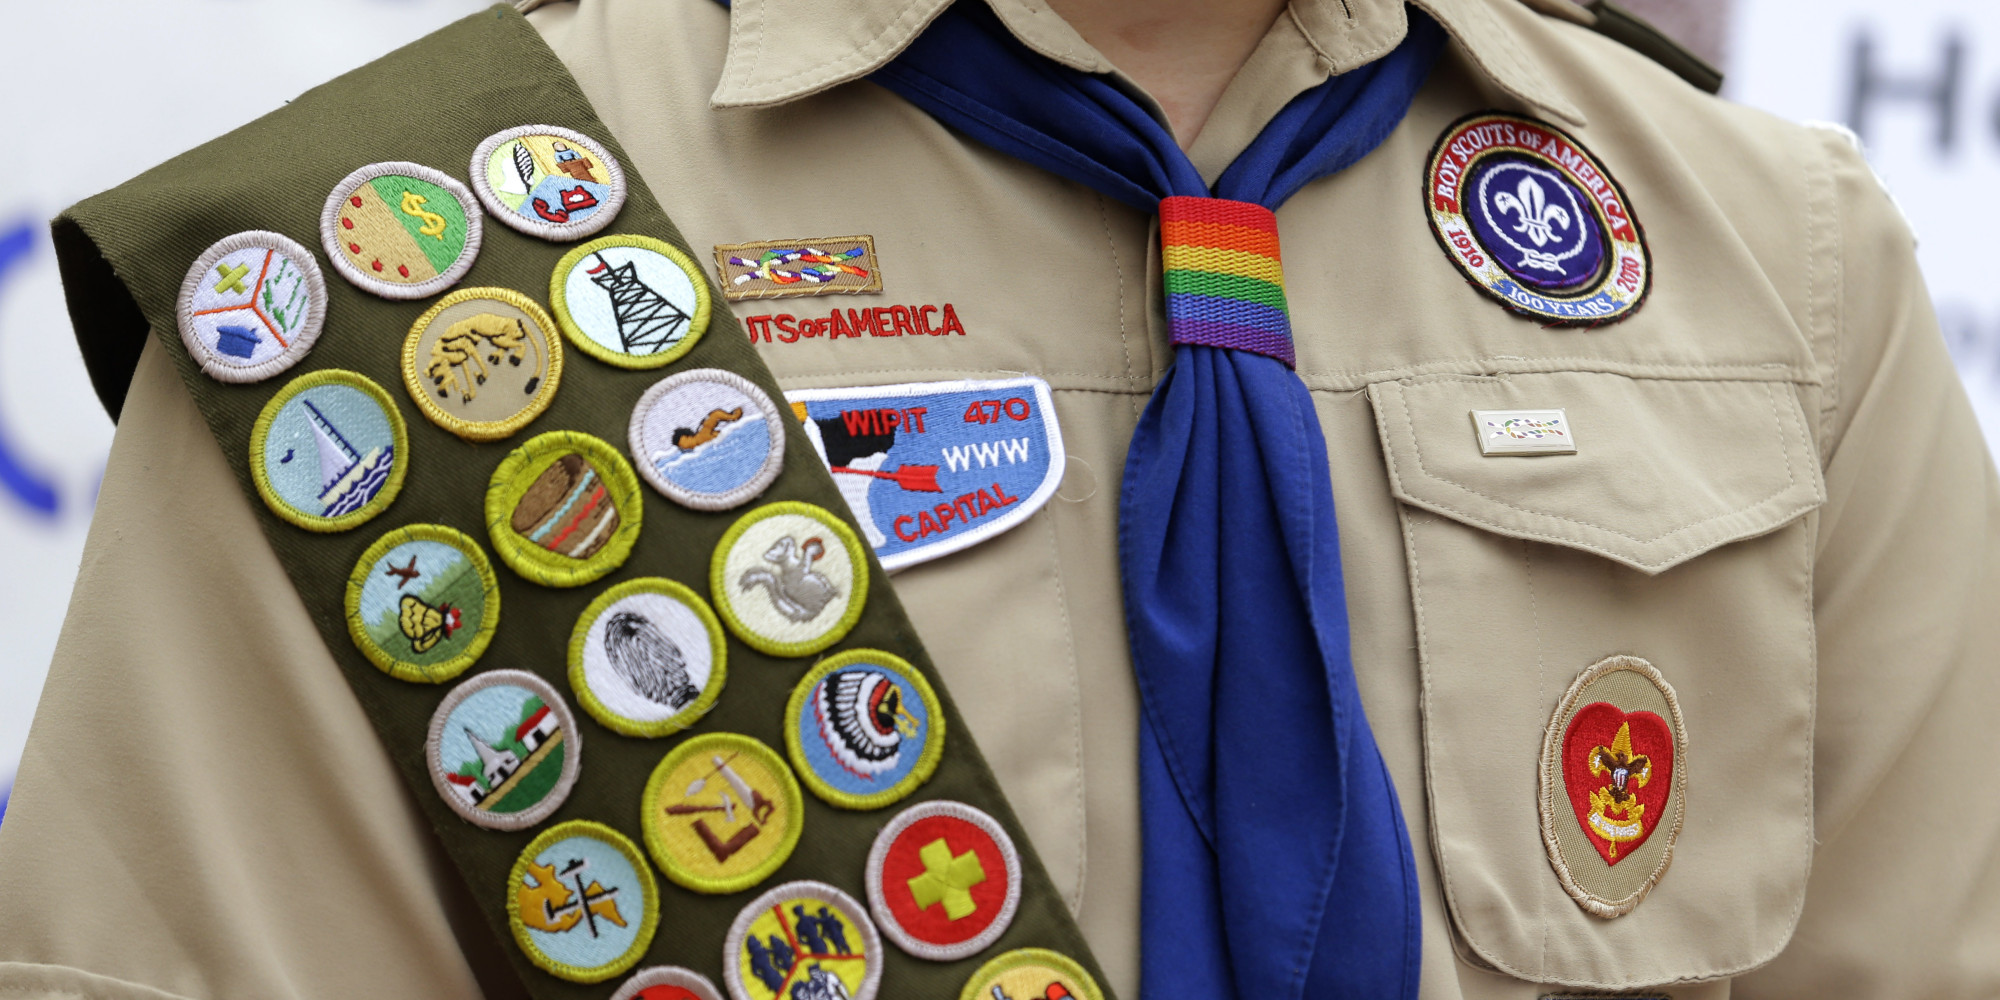 united way and the boy scouts The united way of greater cleveland today said it will withdraw funding in 2013 from the boy scouts of america, citing the scouts stance on prohibiting openly gay youth or adults in the organization.